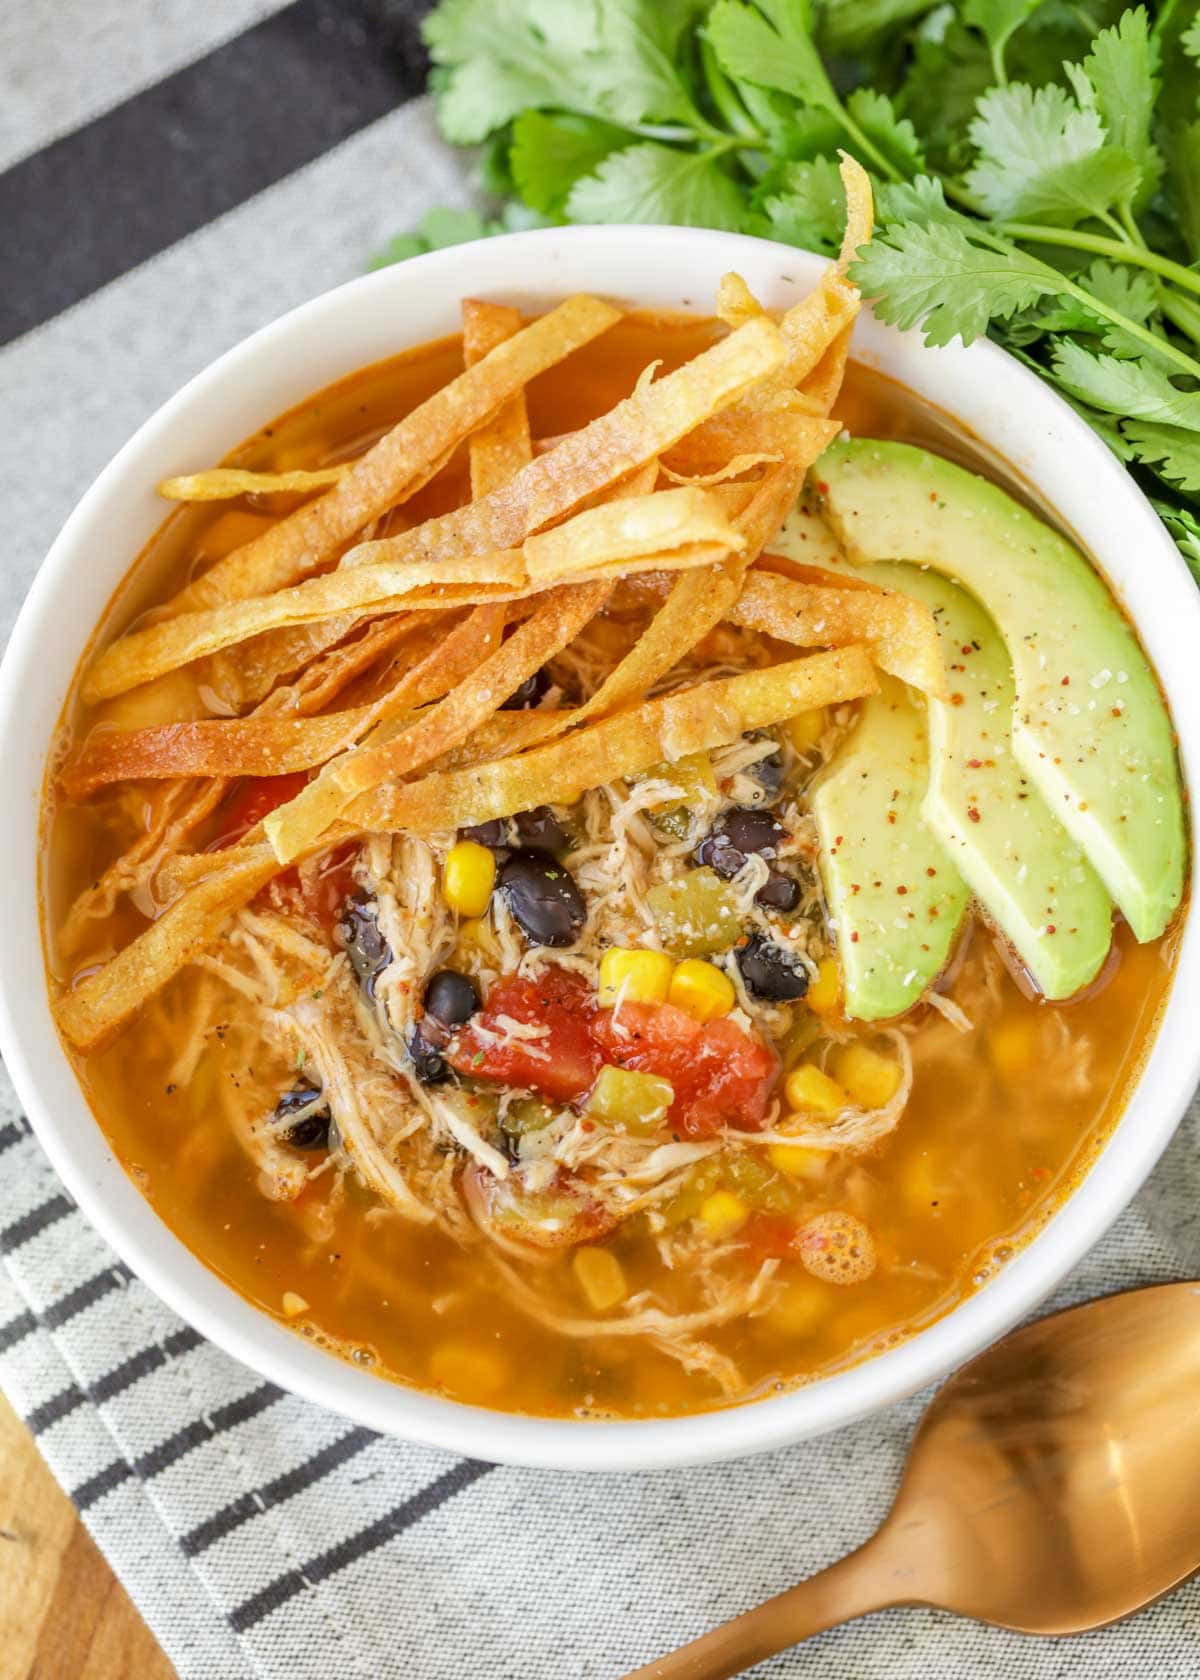 Chicken Tortilla Soup recipe in bowl with tortilla strips and avocado